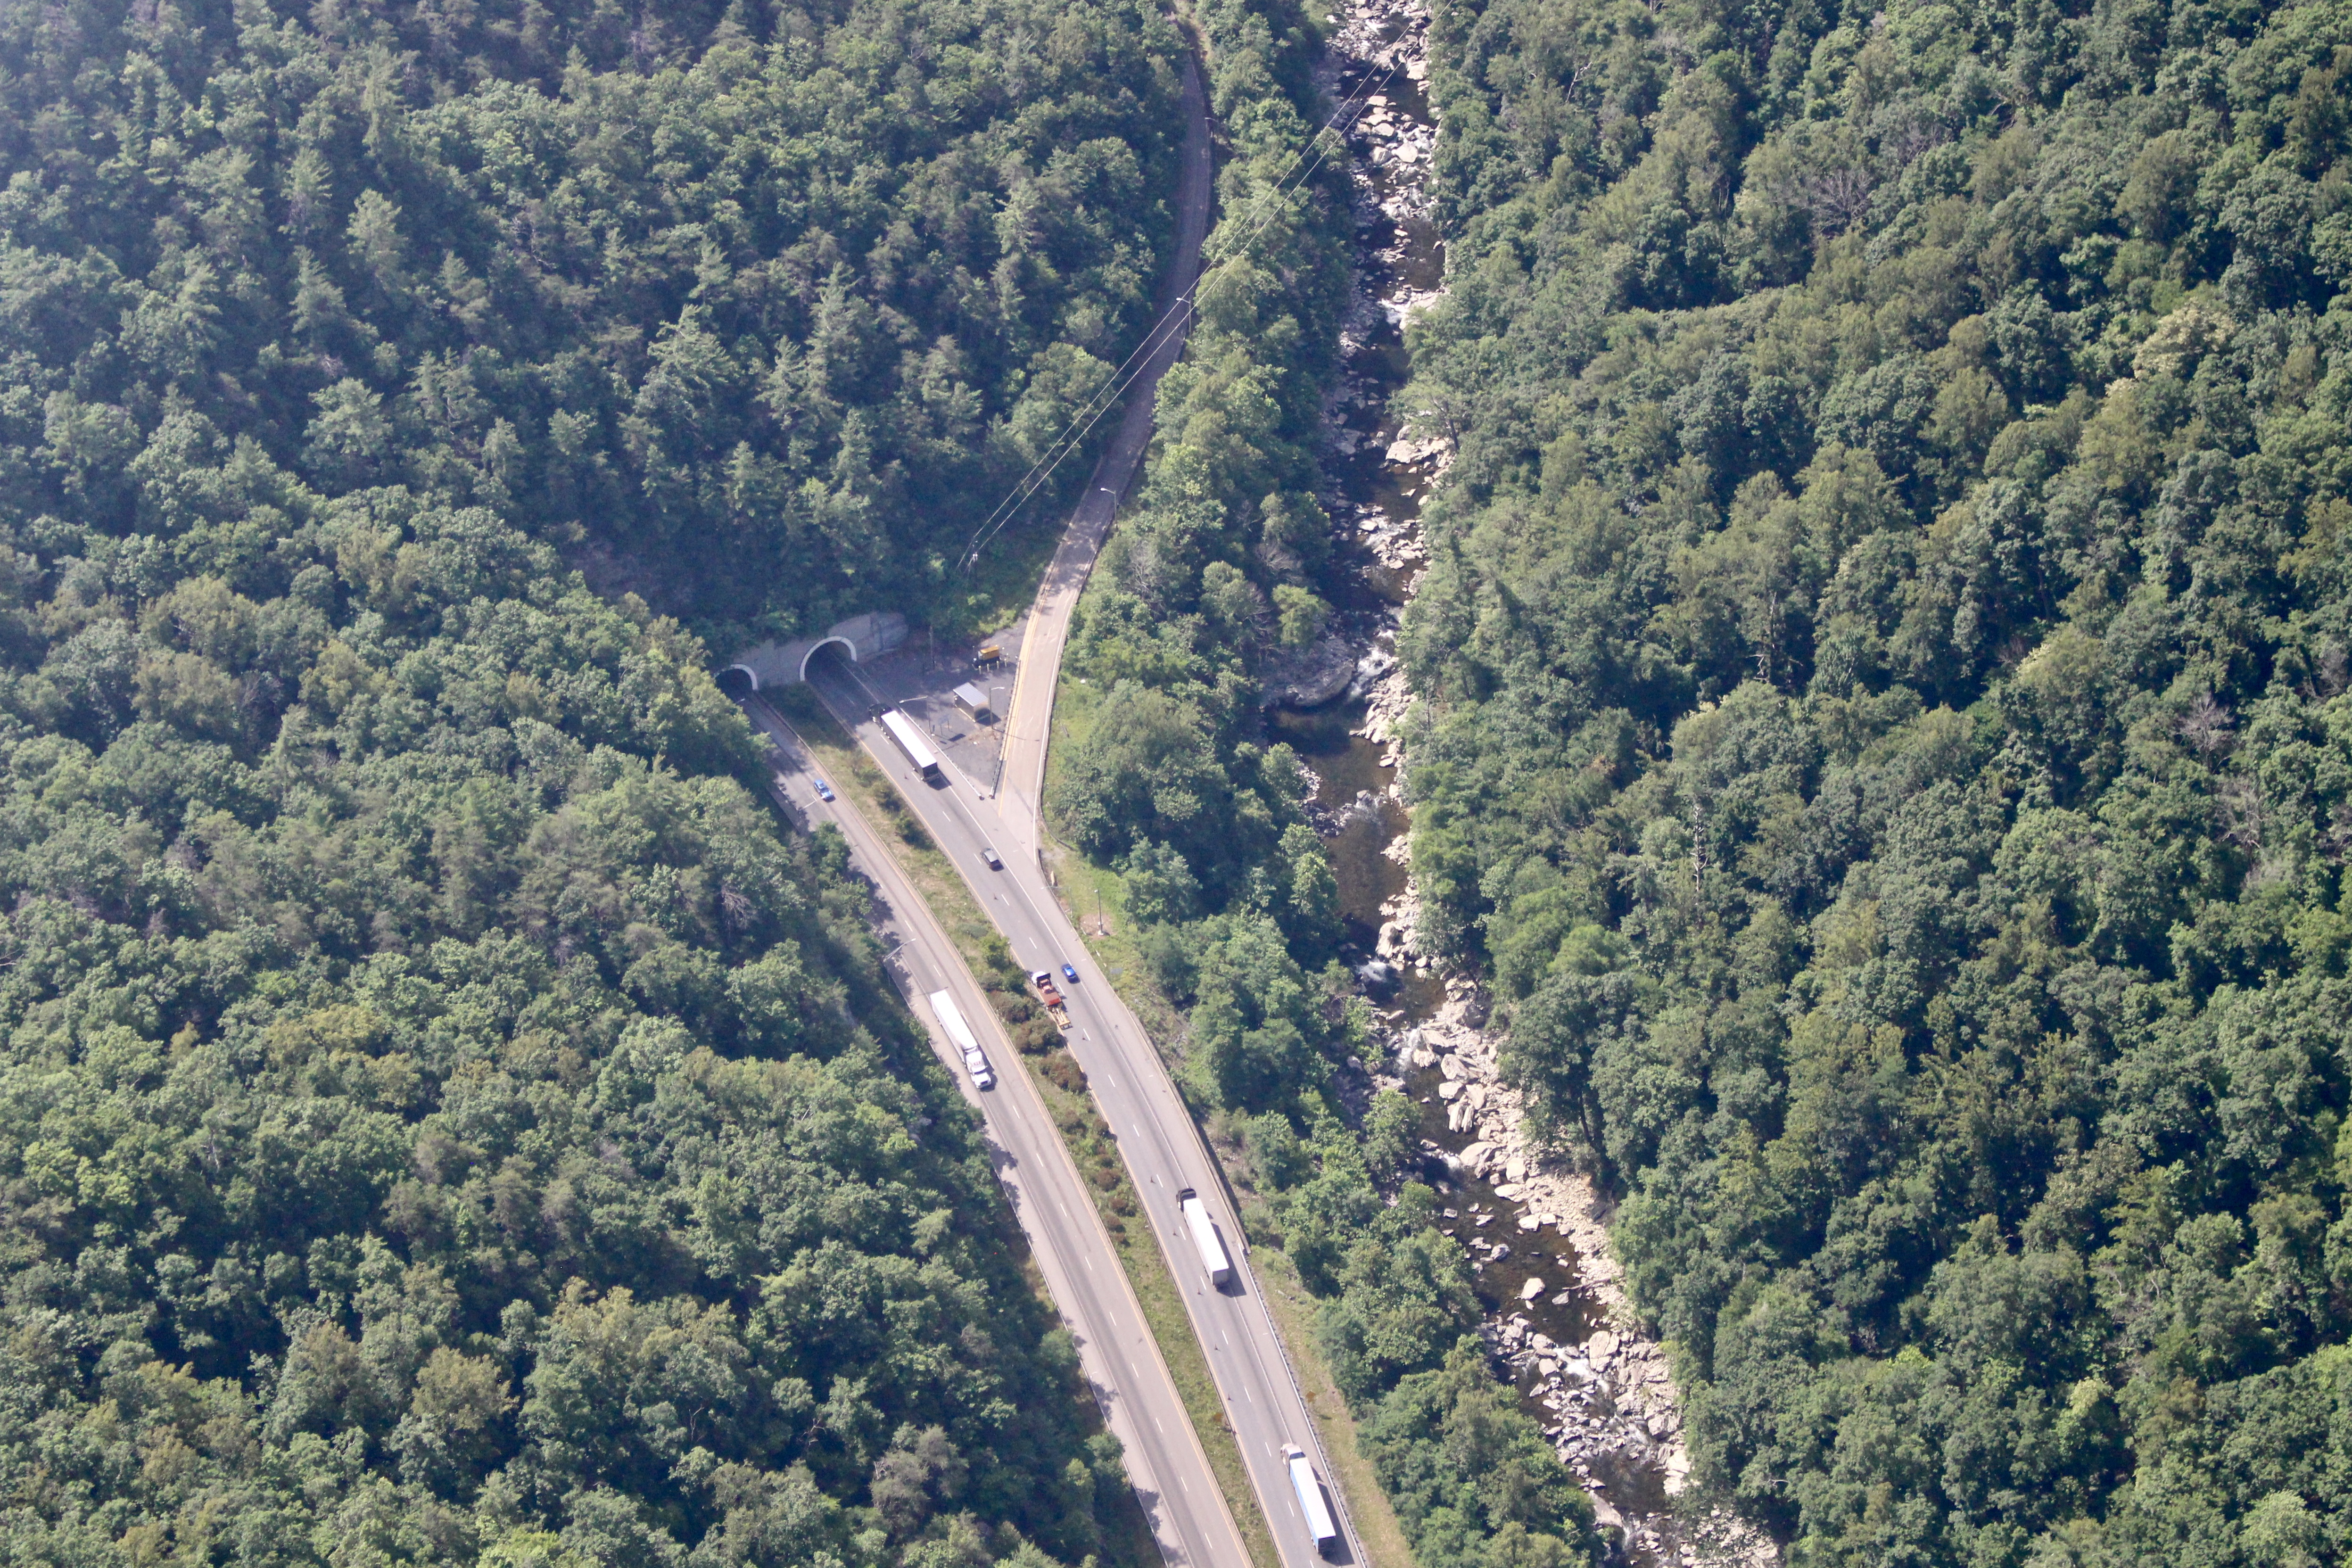 Aerial view of the Pigeon River Gorge, a dangerous 28-mile section of Interstate 40 between Asheville and Knoxville where more than 27,000 vehicles travel daily near Great Smoky Mountains National Park. Photo courtesy of Jake Faber, Southwings.